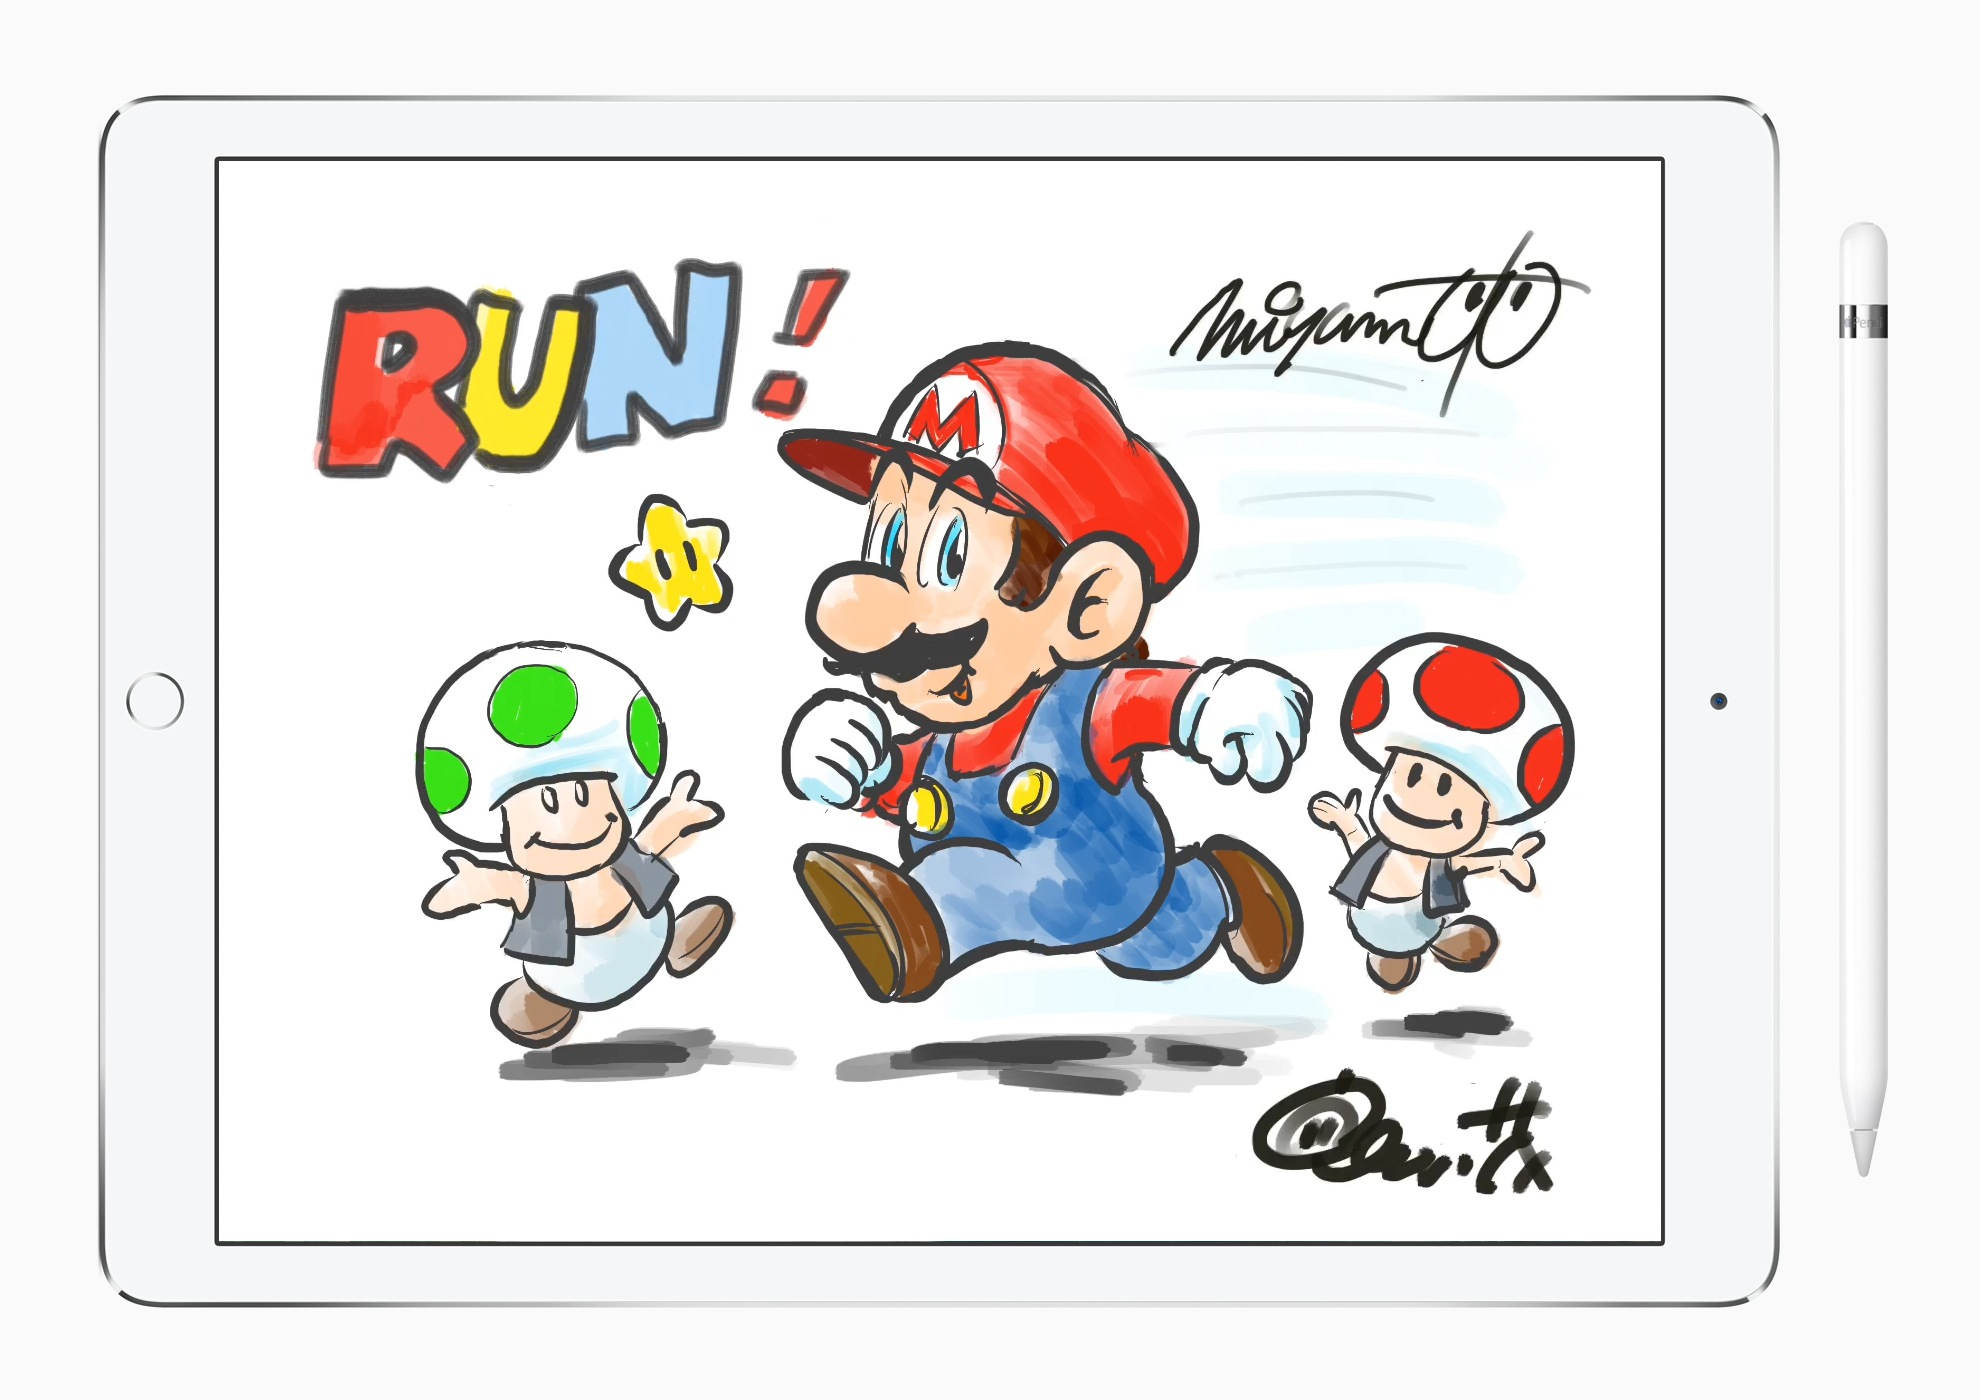 Miyamoto's completed drawing of Mario.